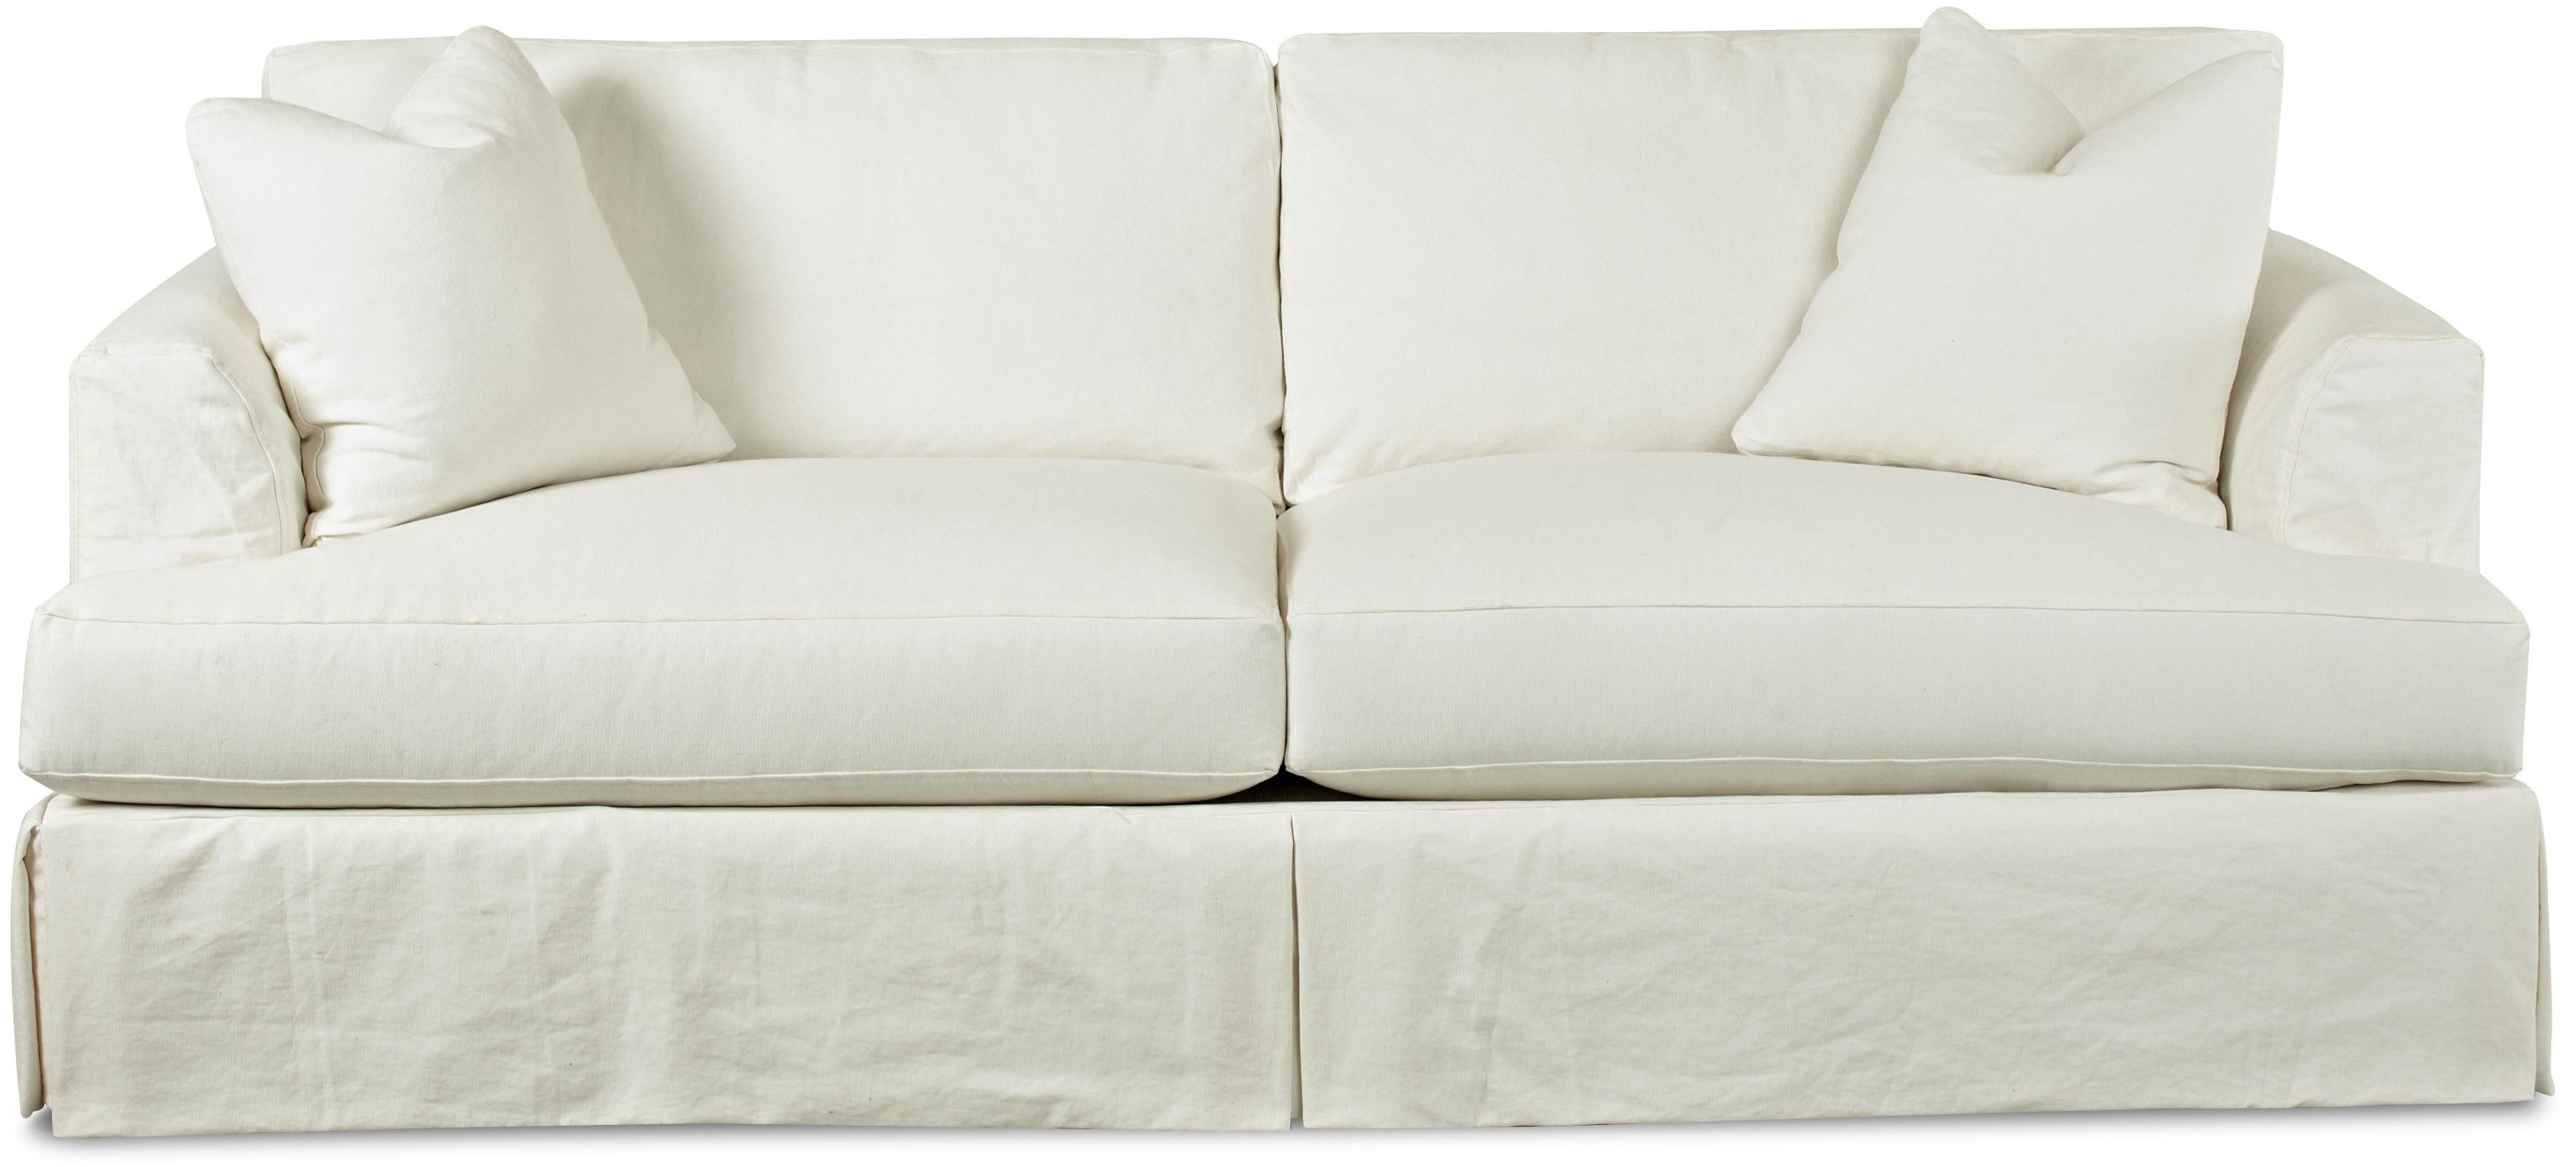 Bentley Sofa by Klaussner at Northeast Factory Direct